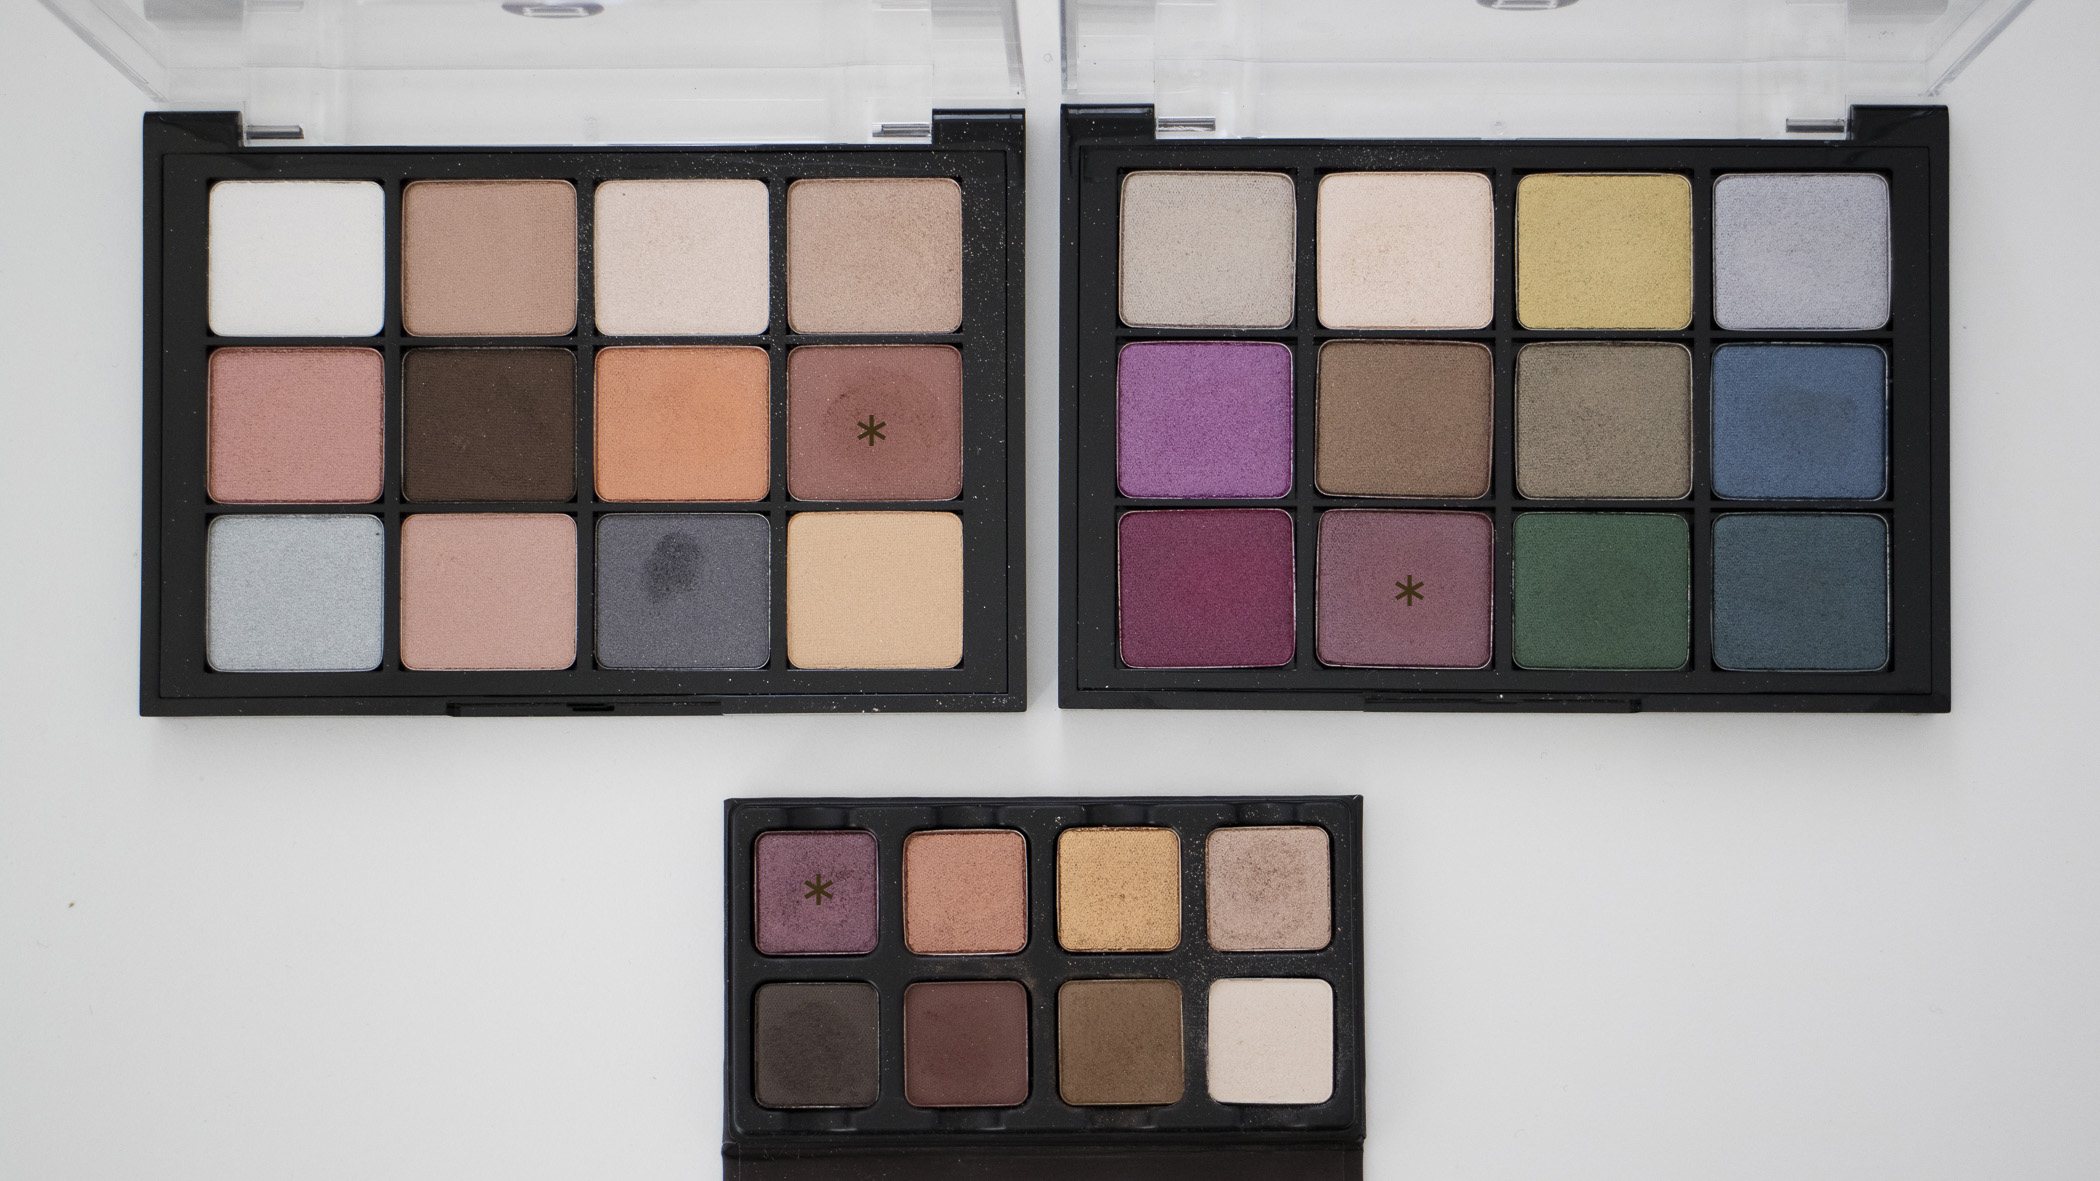 Top Left: Sultry Muse; Top Right: Bijoux Royal